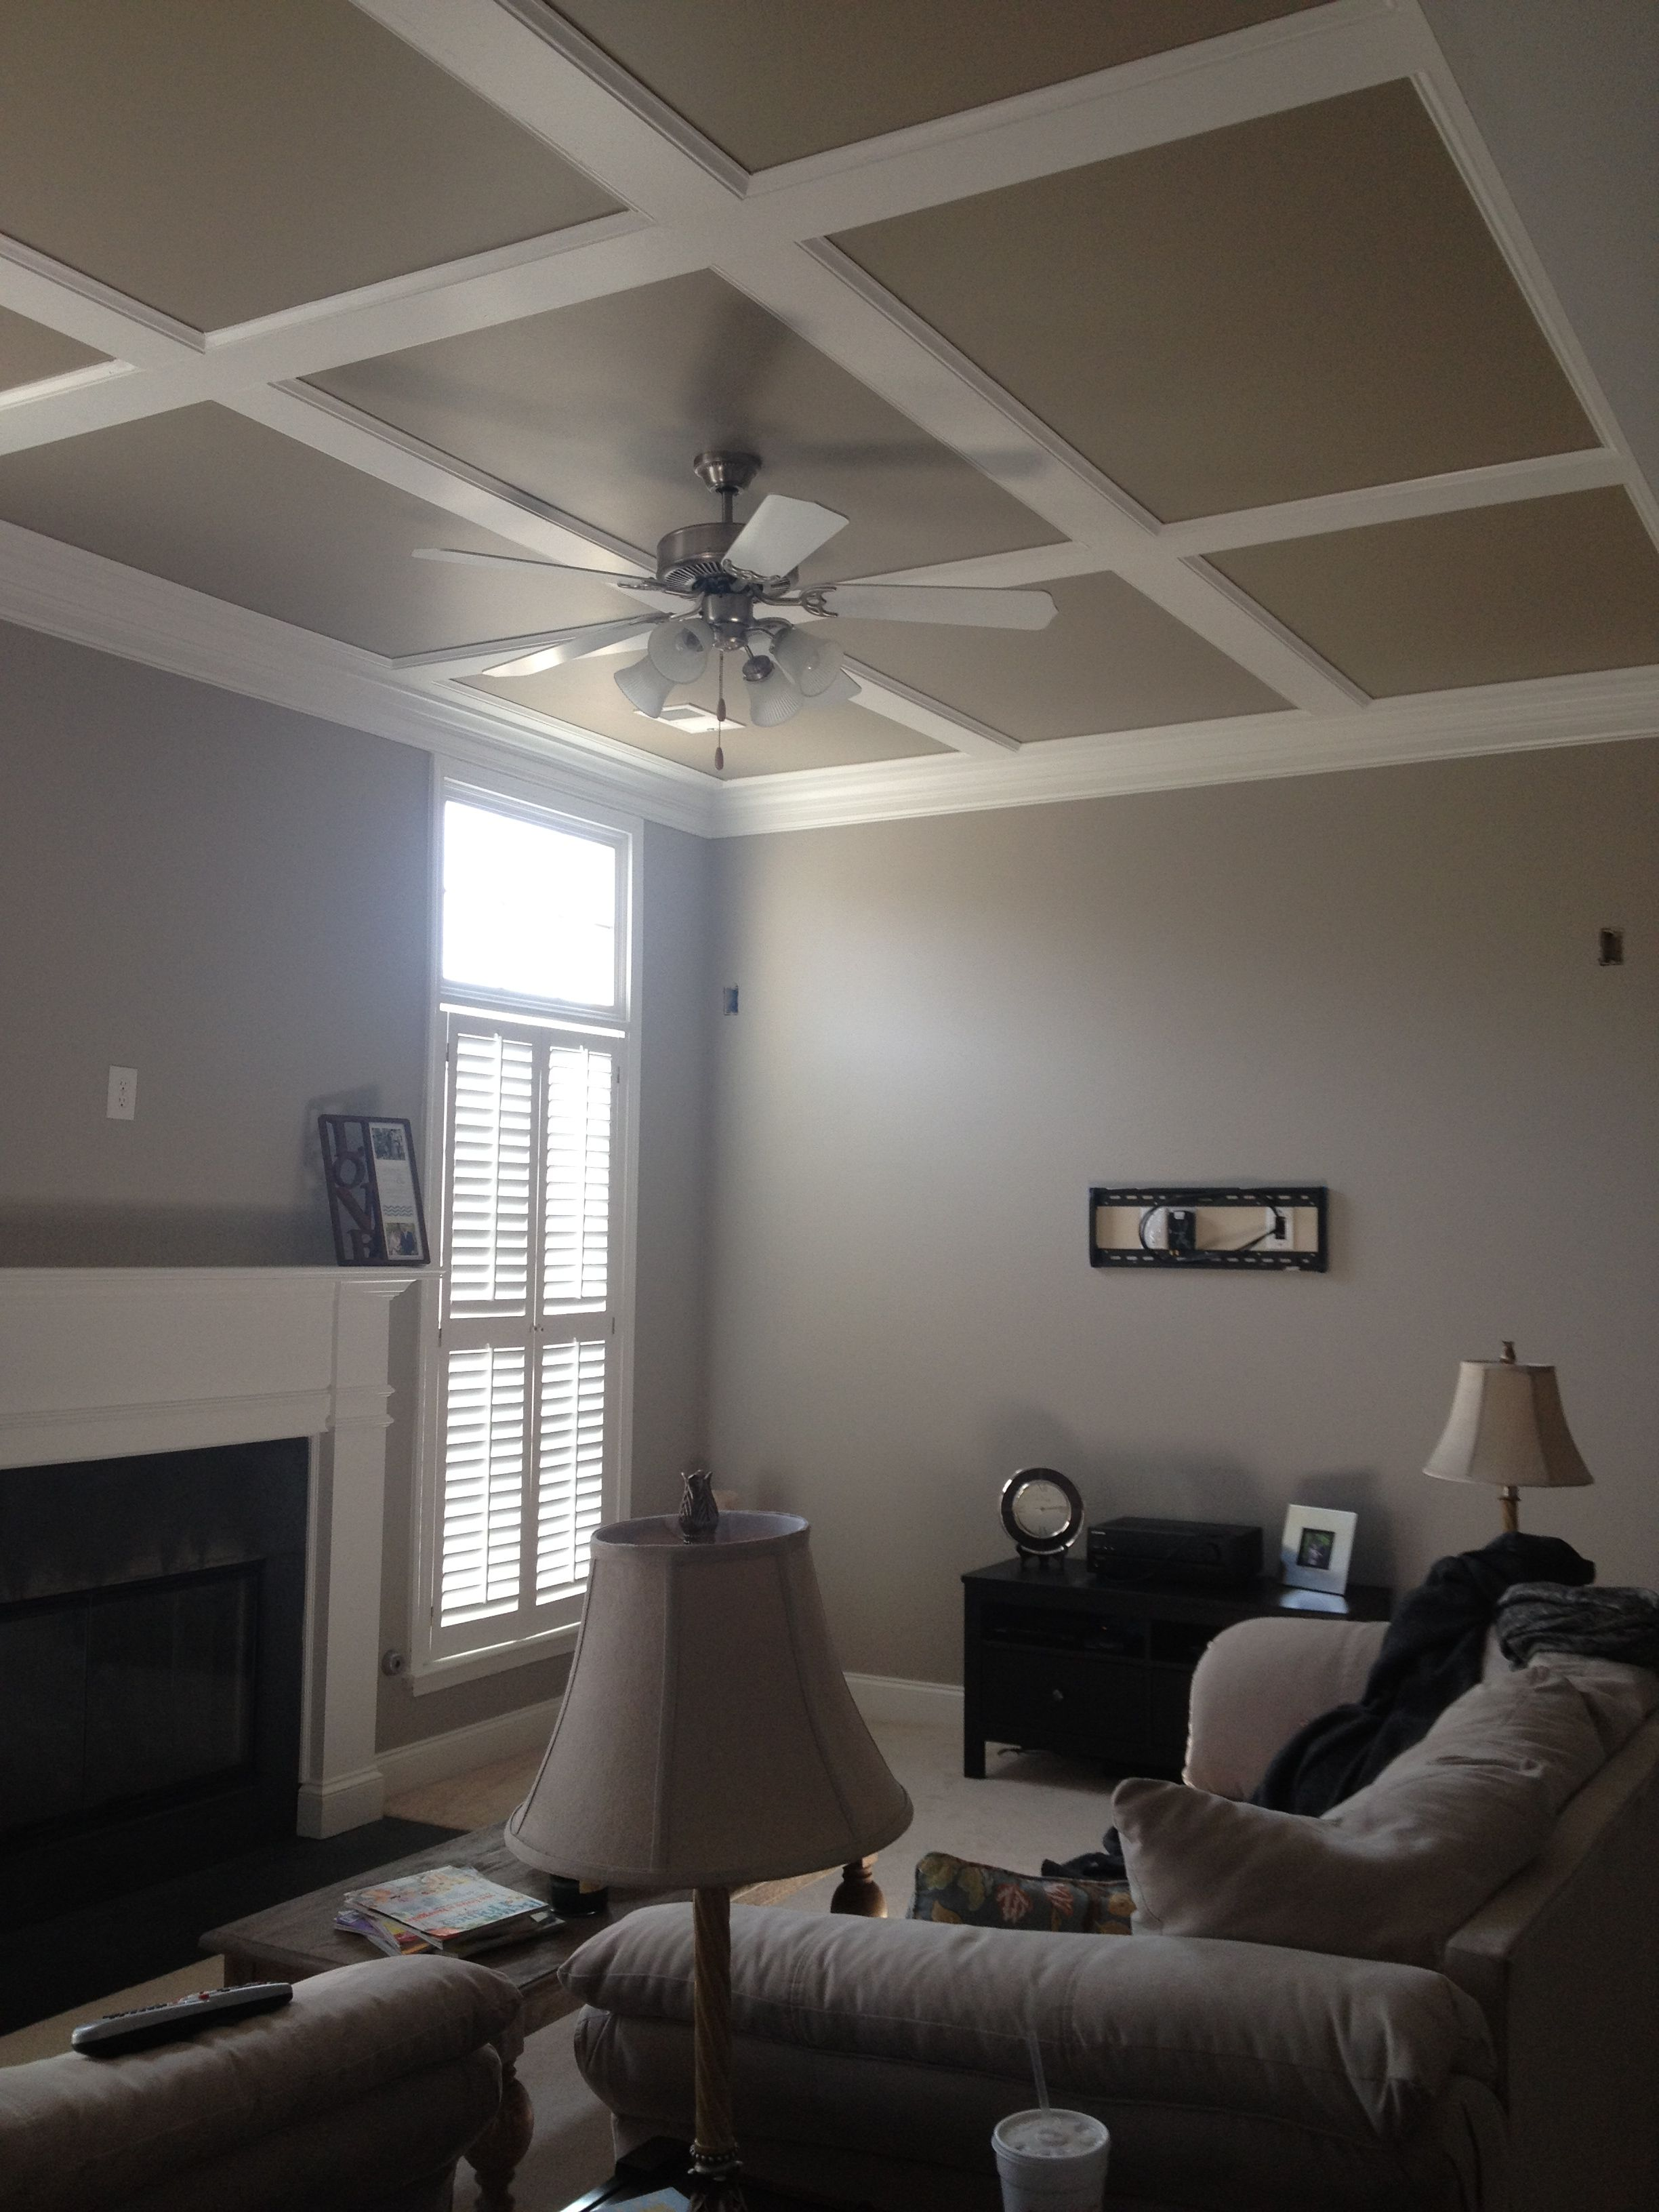 Captivating Behr Grey Mist On The Walls And Behr Smoked Tan On The Ceiling.